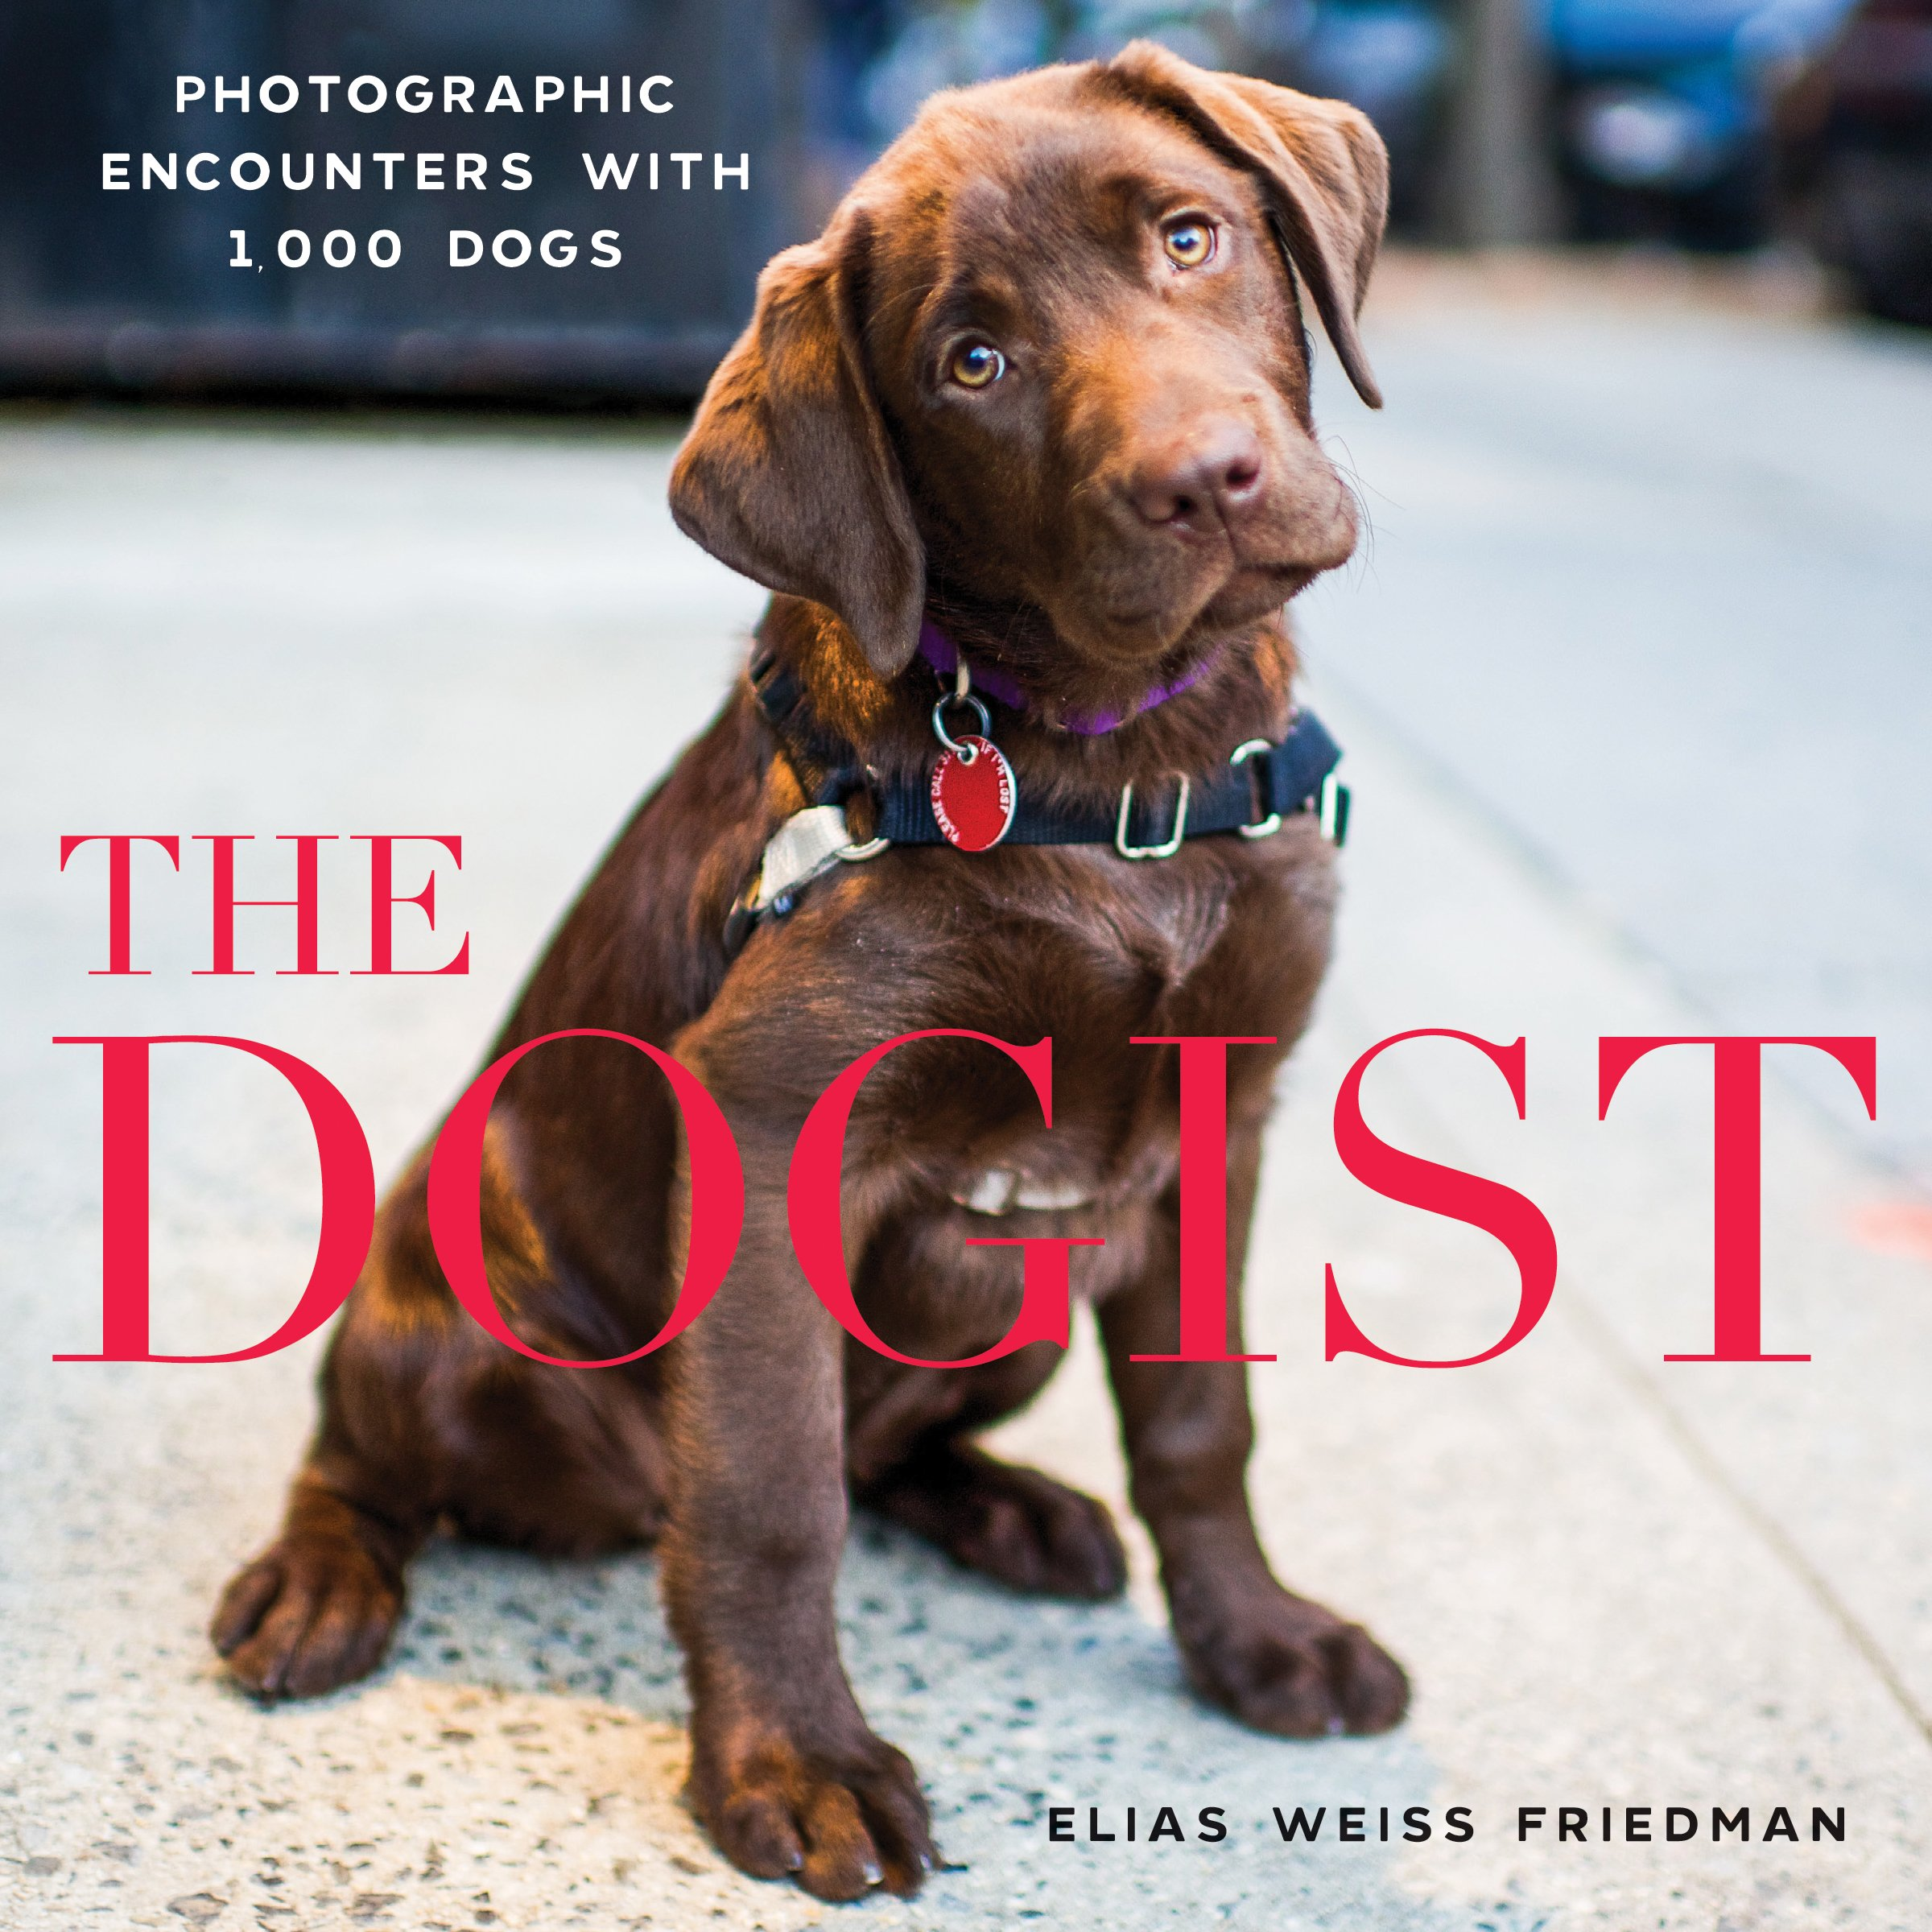 Amazon: The Dogist: Photographic Encounters With 1,000 Dogs  (9781579656713): Elias Weiss Friedman: Books